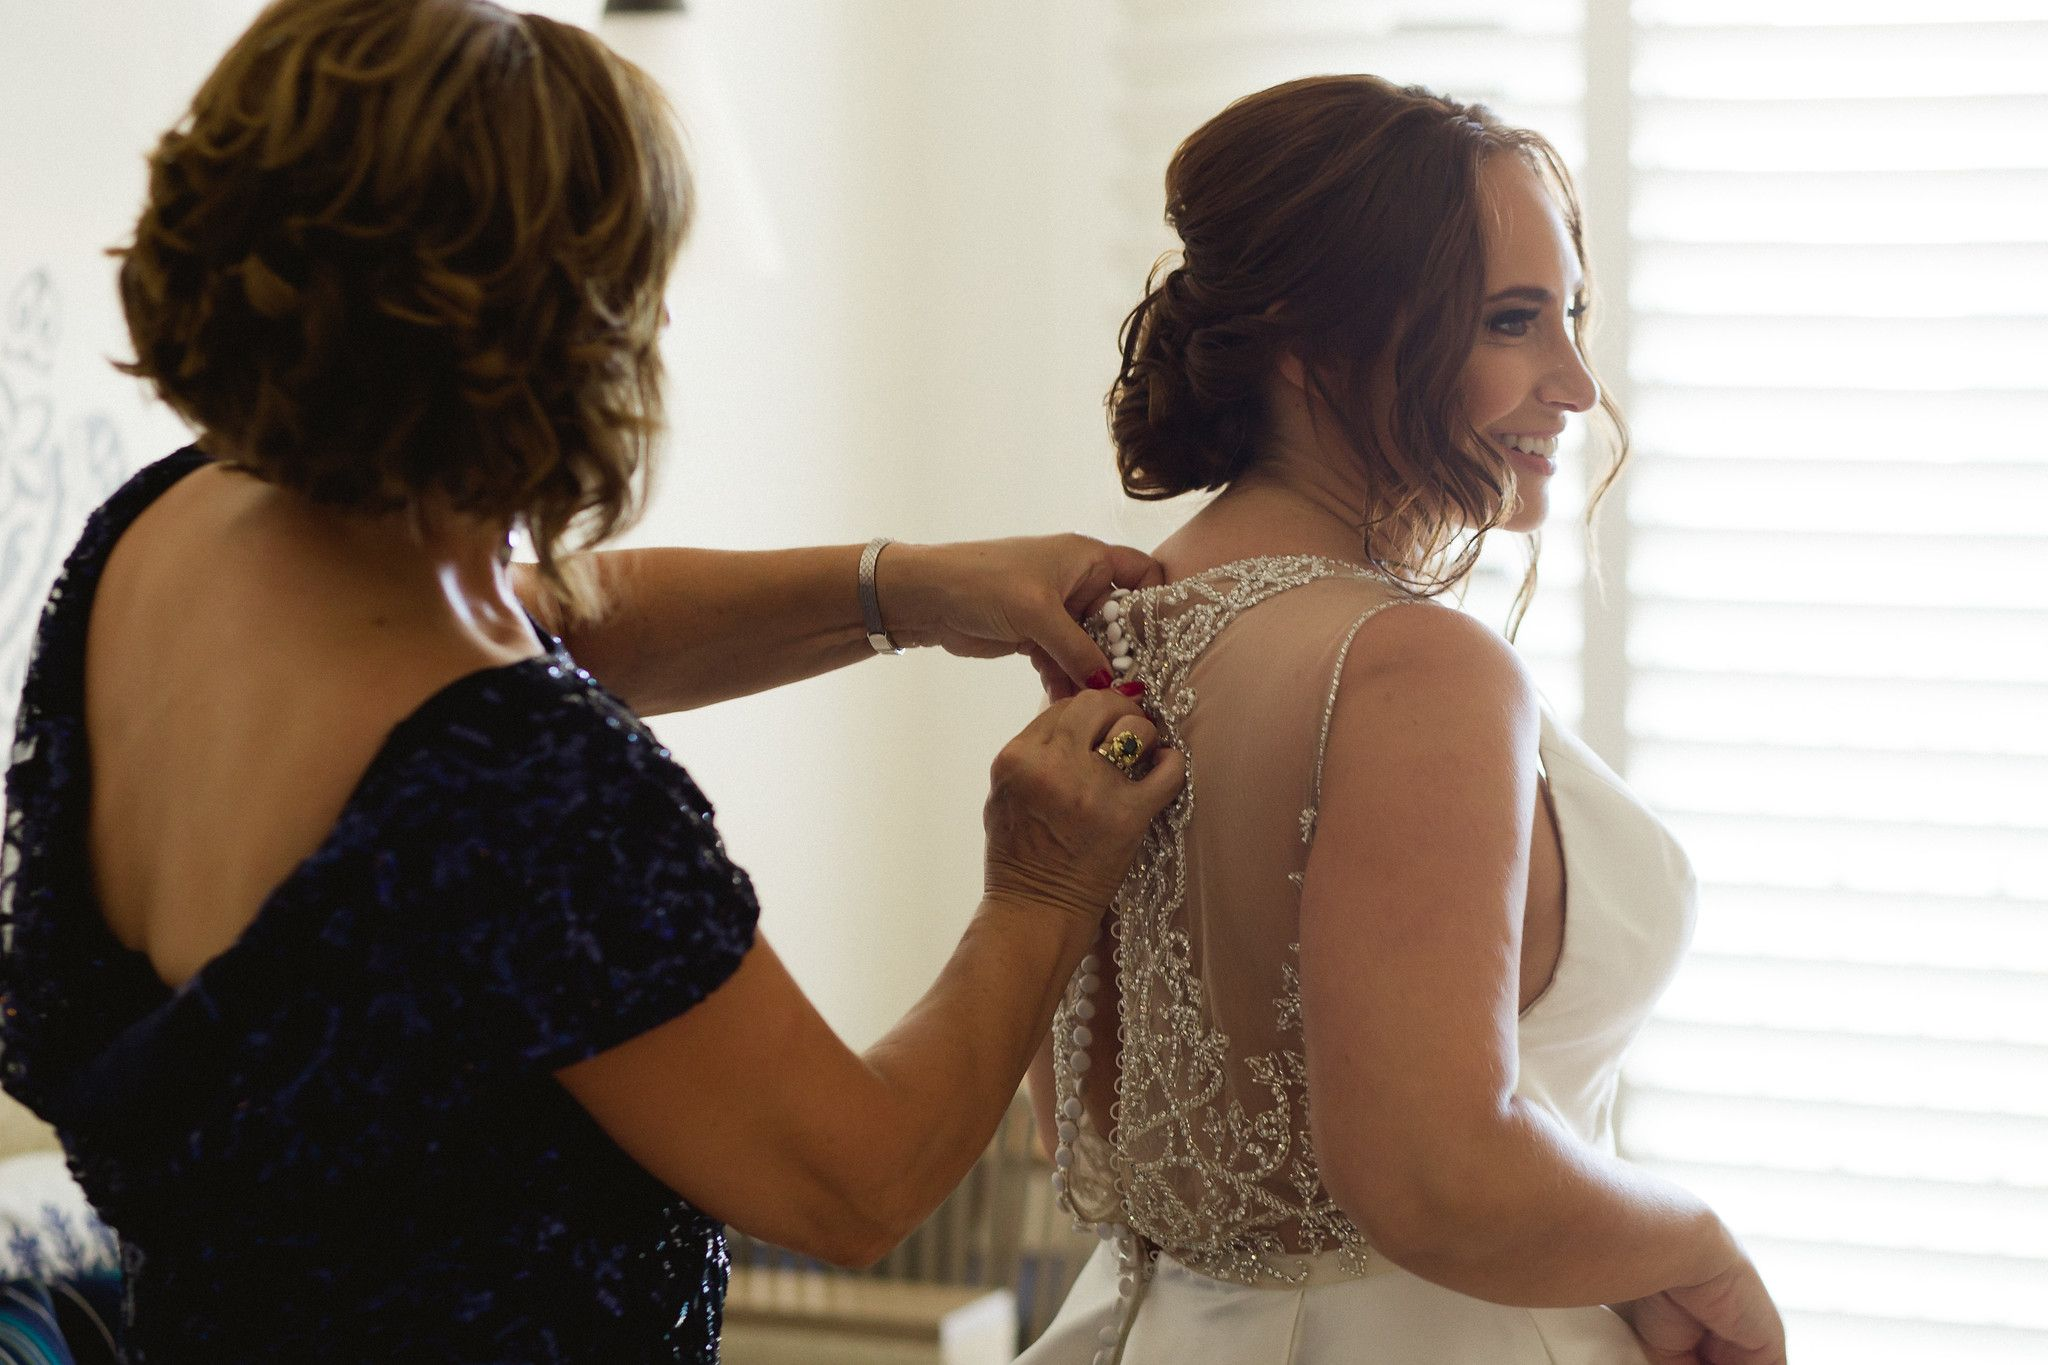 Bride on her wedding day getting ready and putting her dress on. She was staying at Hilton Los Cabos and that is where she got ready and Alma Vallejo with Cabo Makeup did her Hairstyle and Makeup. Cabo Wedding Services did their Wedding Planning and design